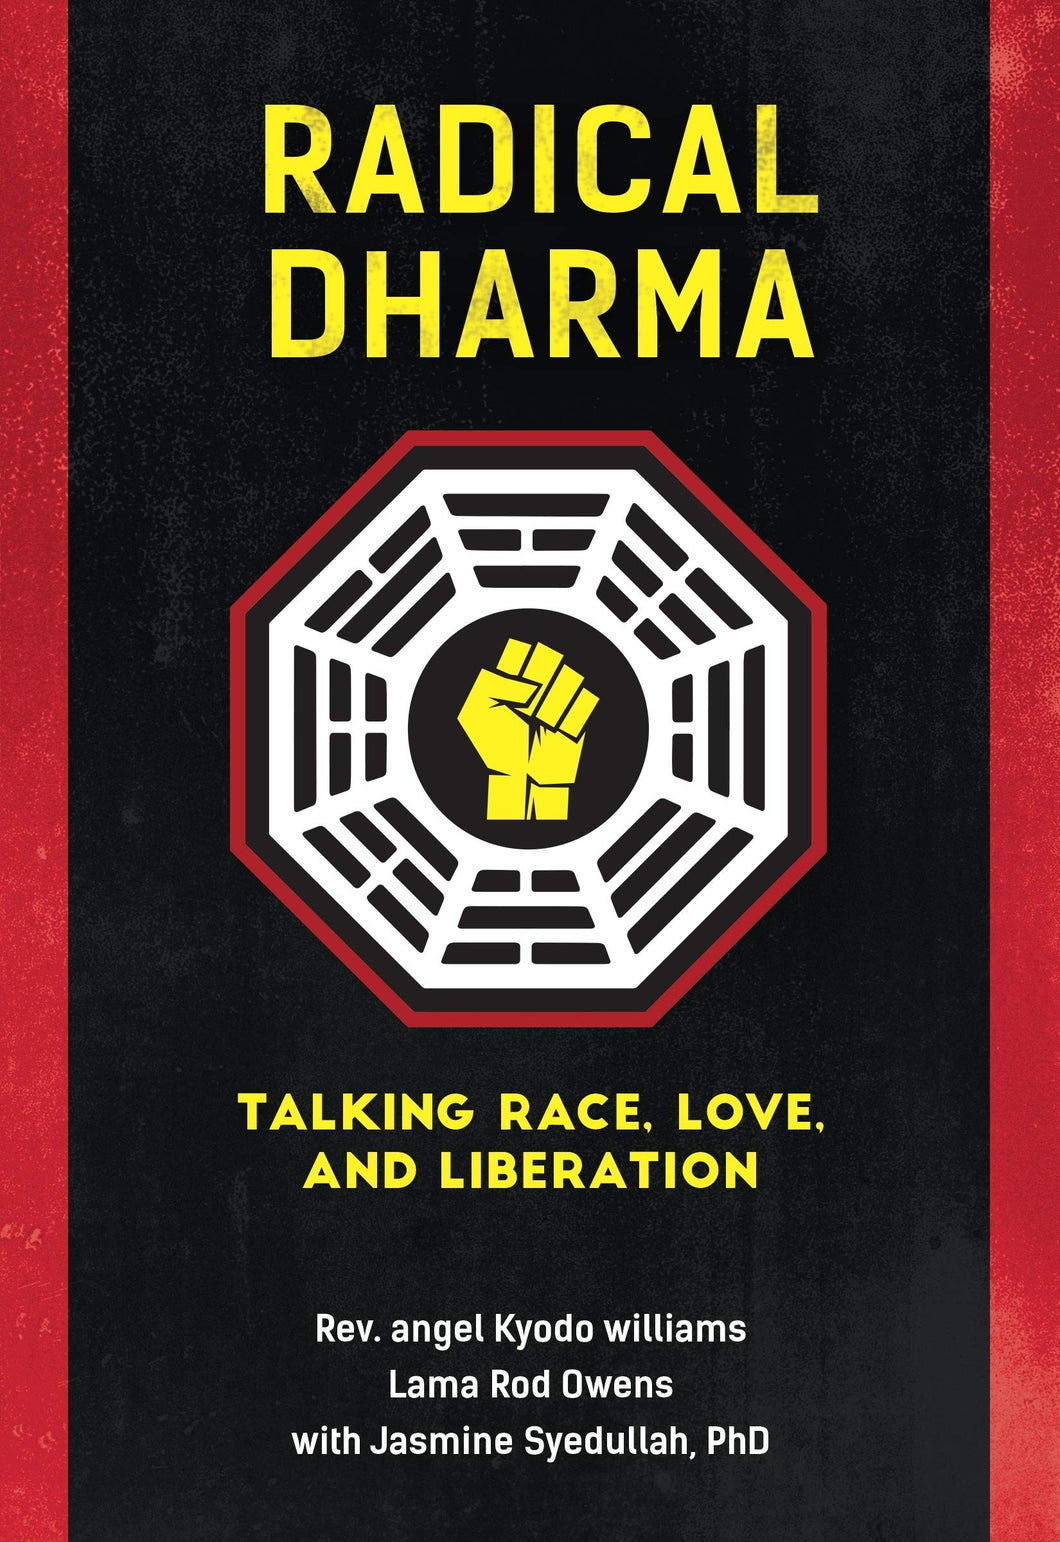 Radical Dharma: Talking Race, Love, and Liberation by Rev. angel Kyodo williams, Lama Rod Owens, Jasmine Syedullah, Ph.D.